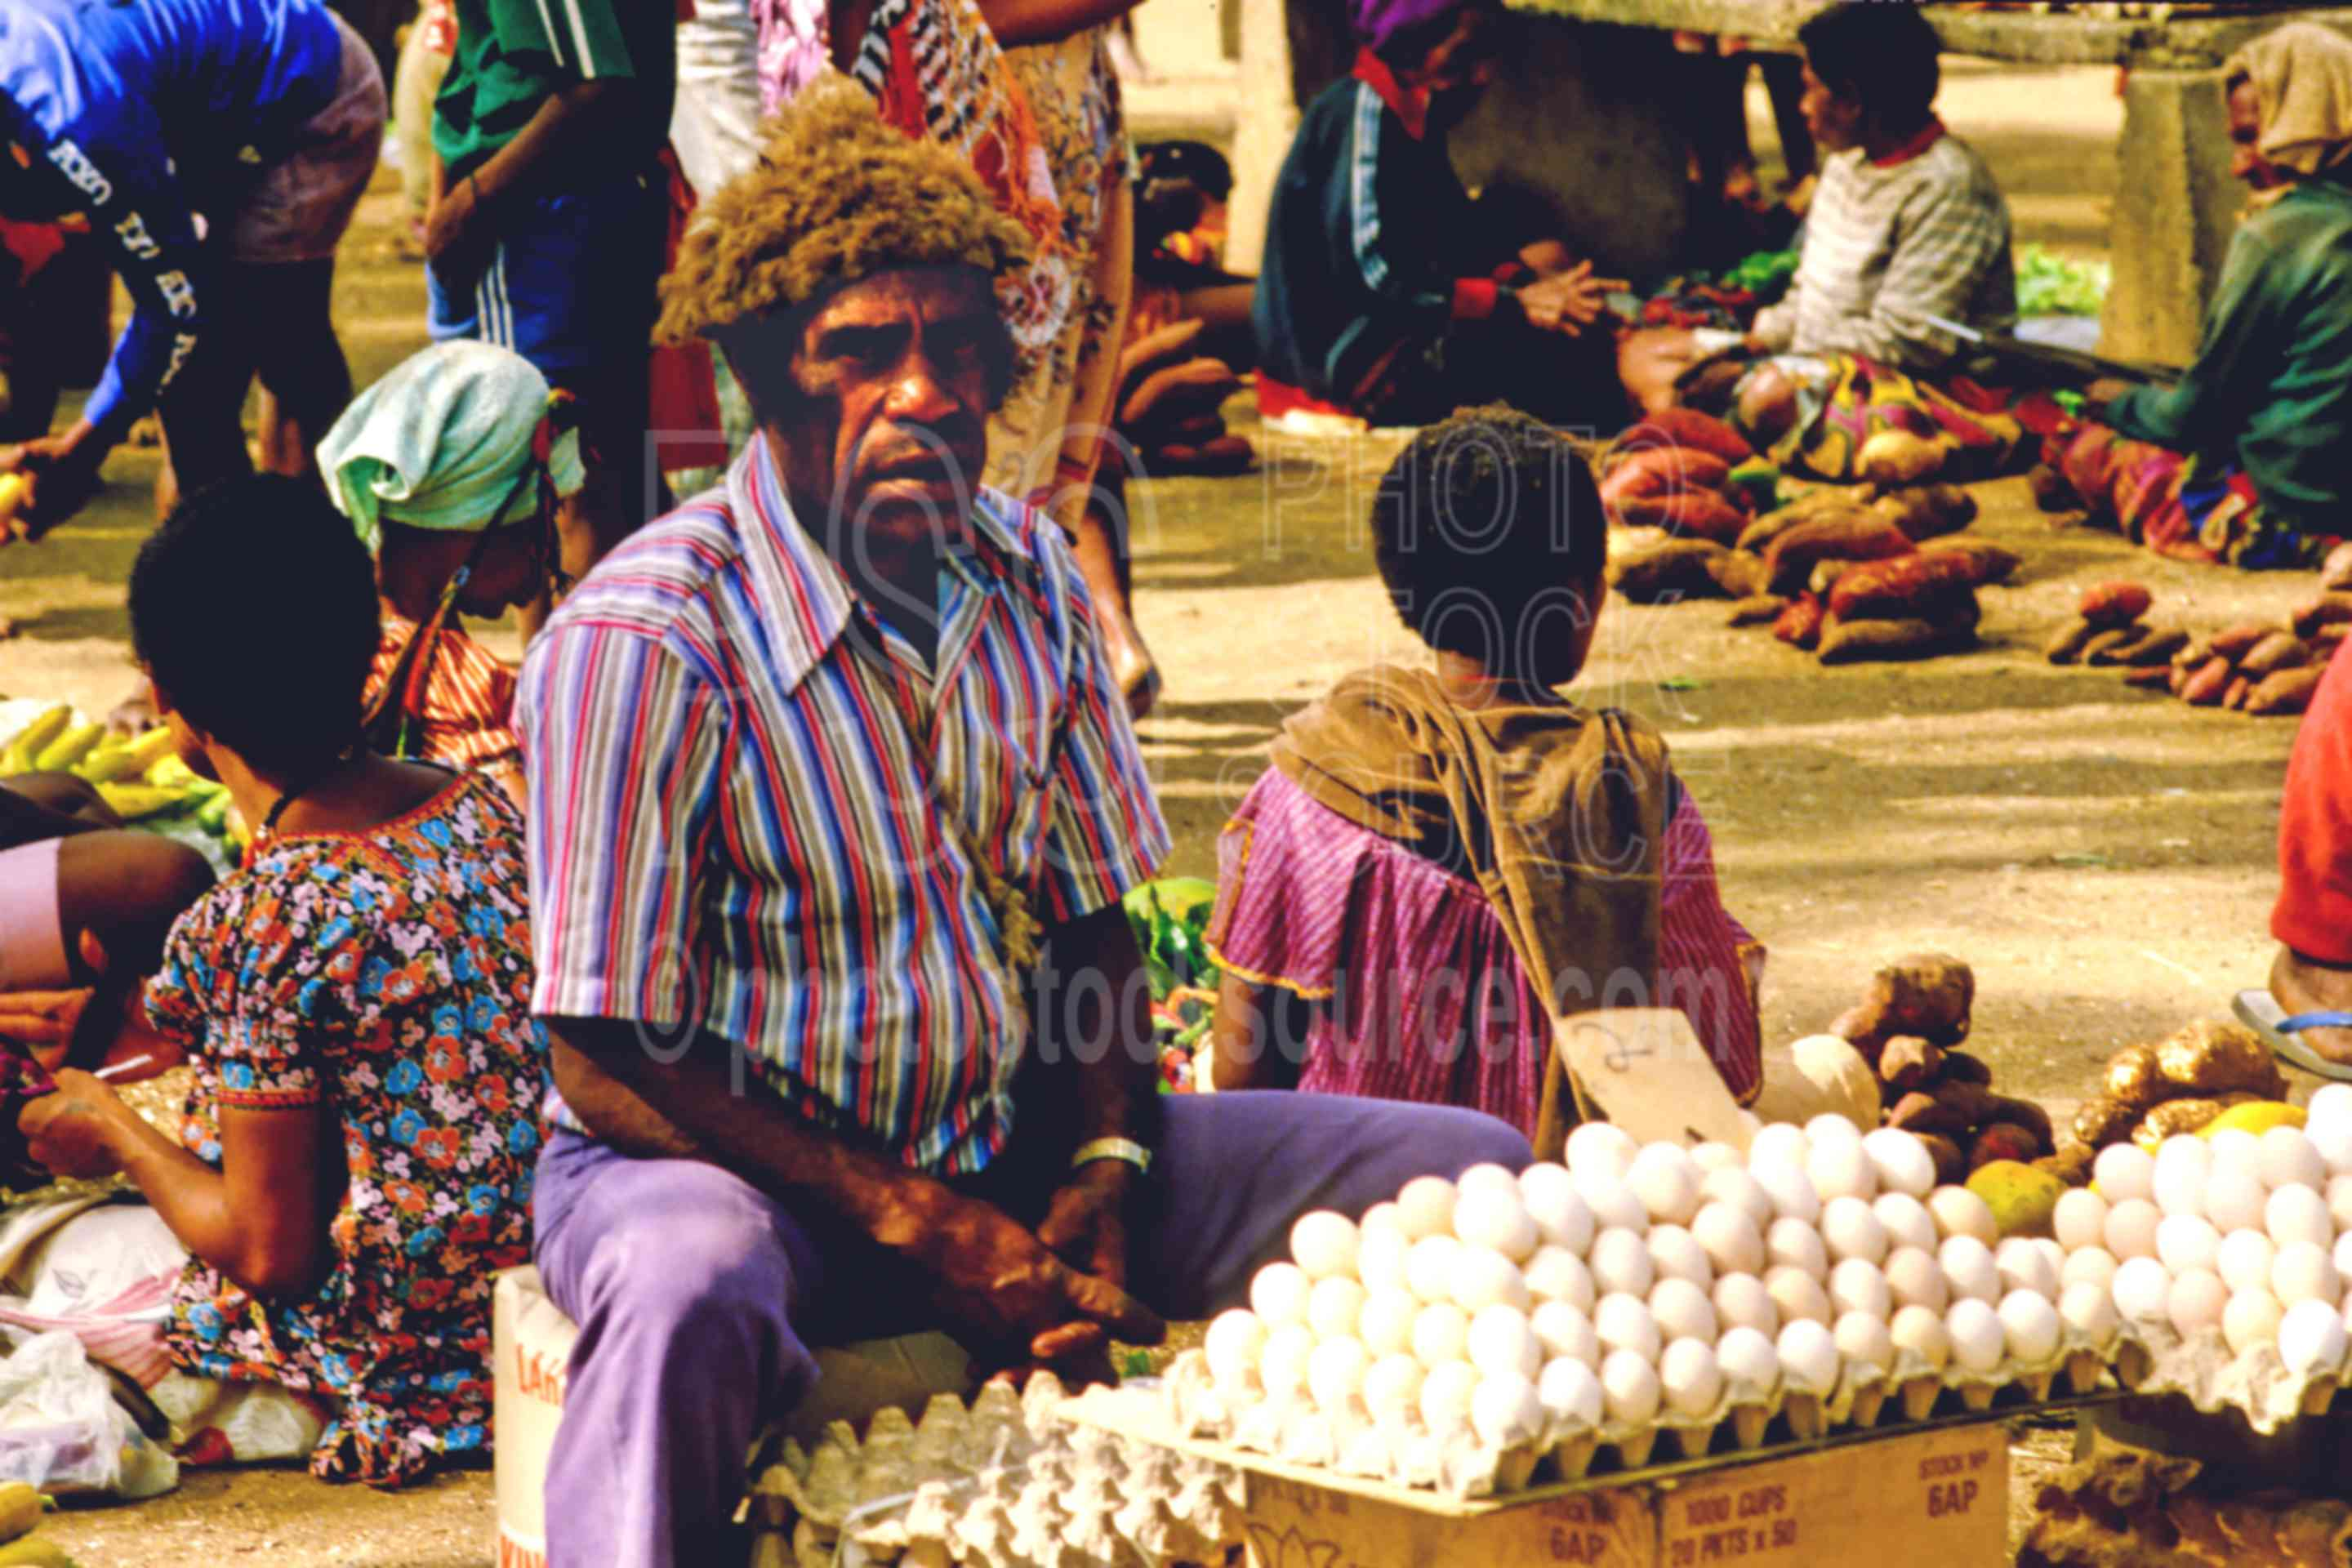 Egg Seller,eggs,hats,mans,market,seller,png markets